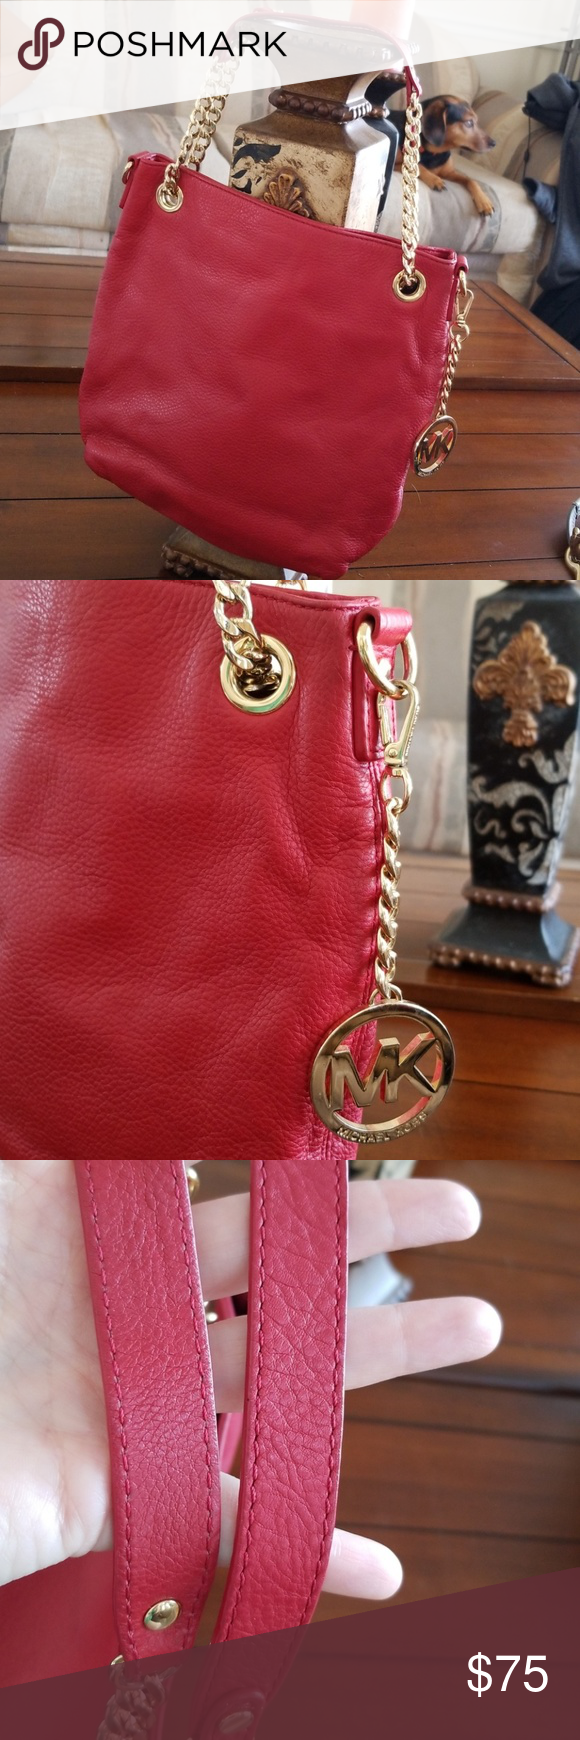 💋 MICHAEL KORS RED BAG Beautiful apple red leather bag. Can use as shoulder bag or place the longer...